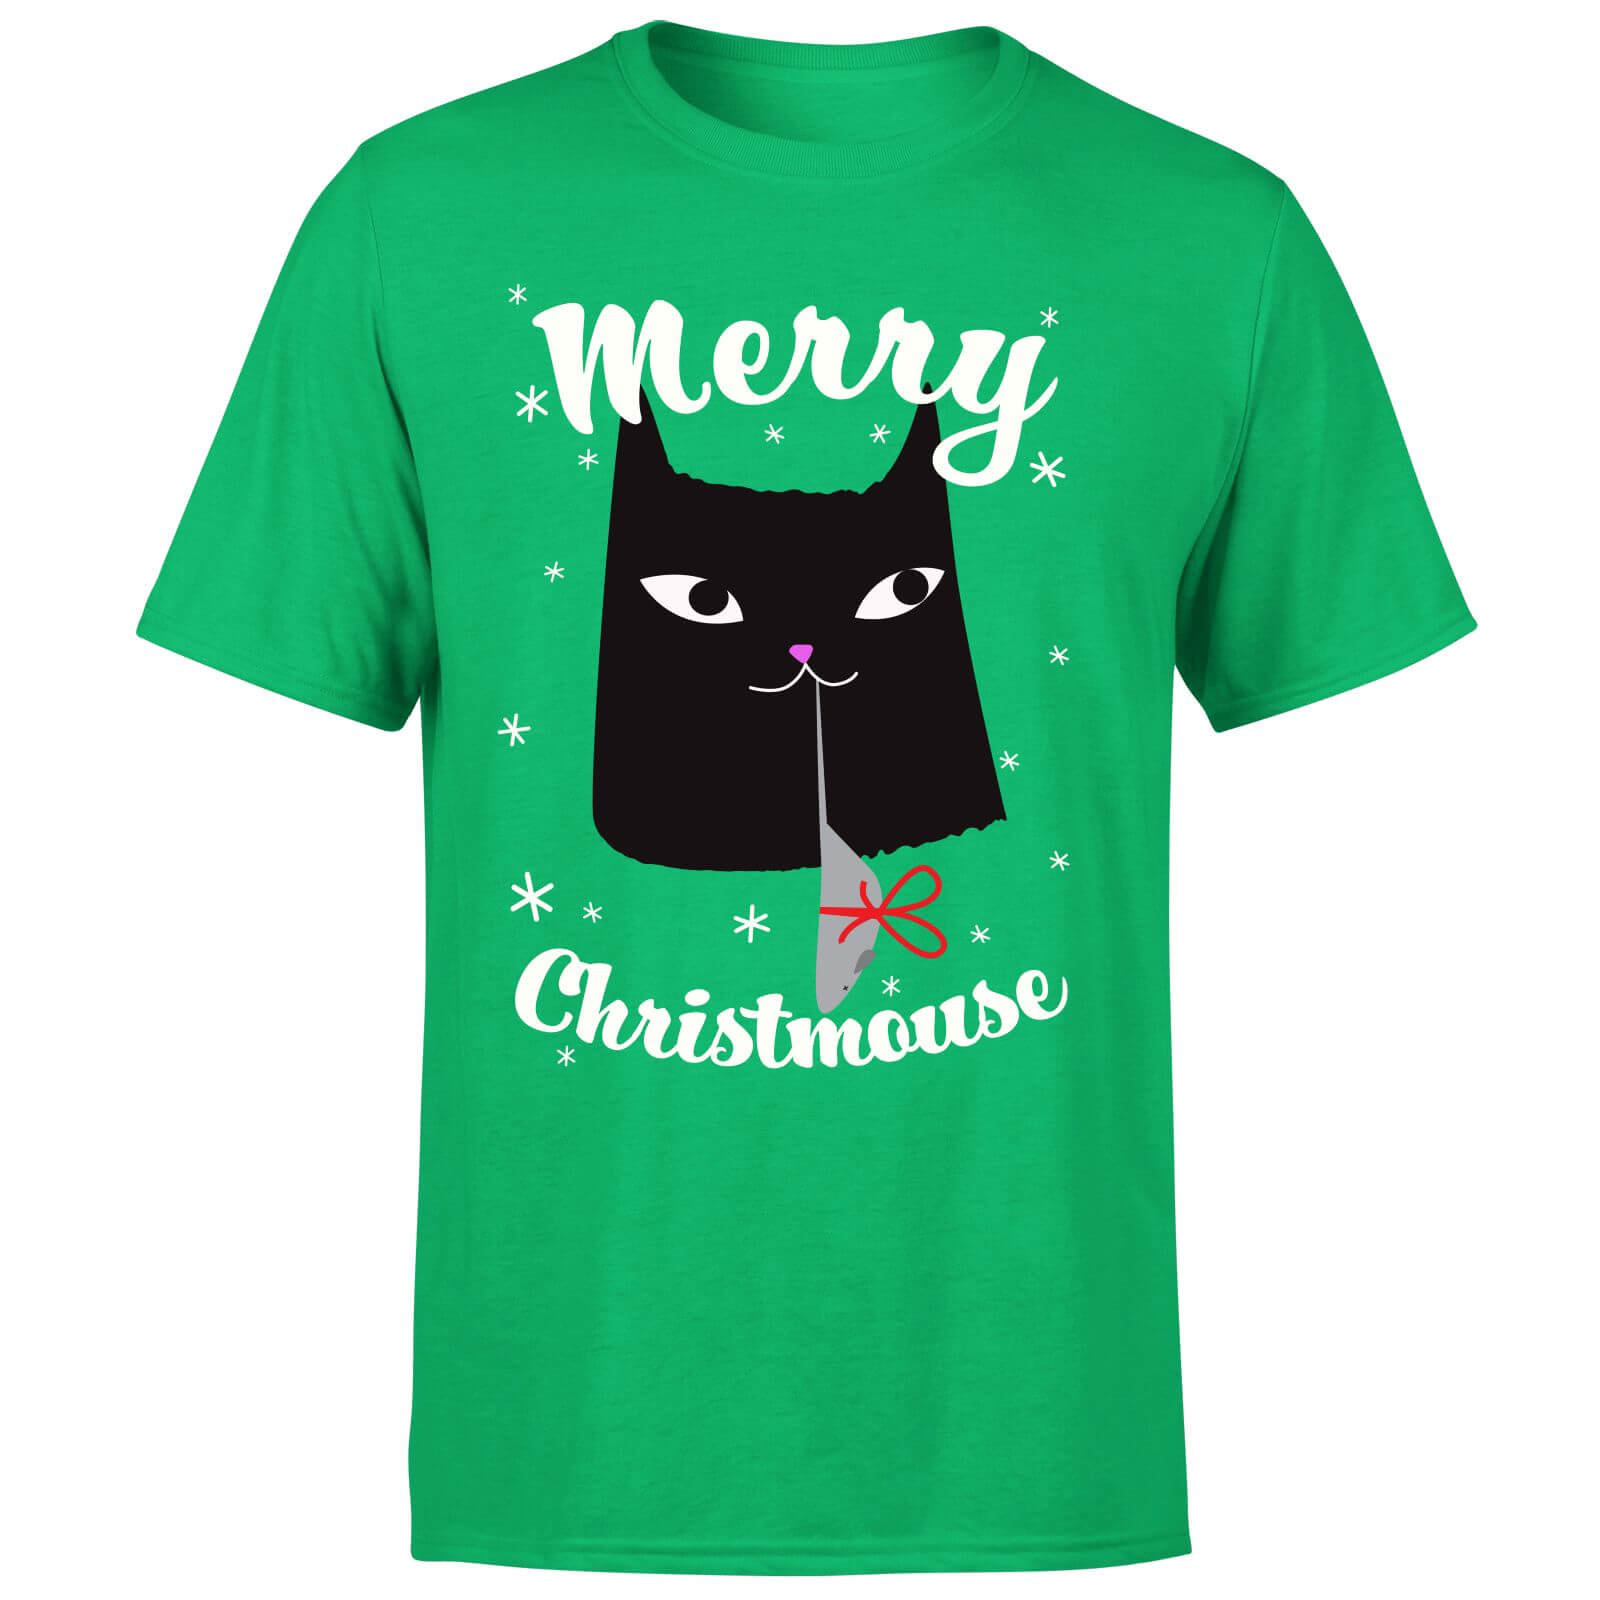 Merry Christmouse T-Shirt - Kelly Green